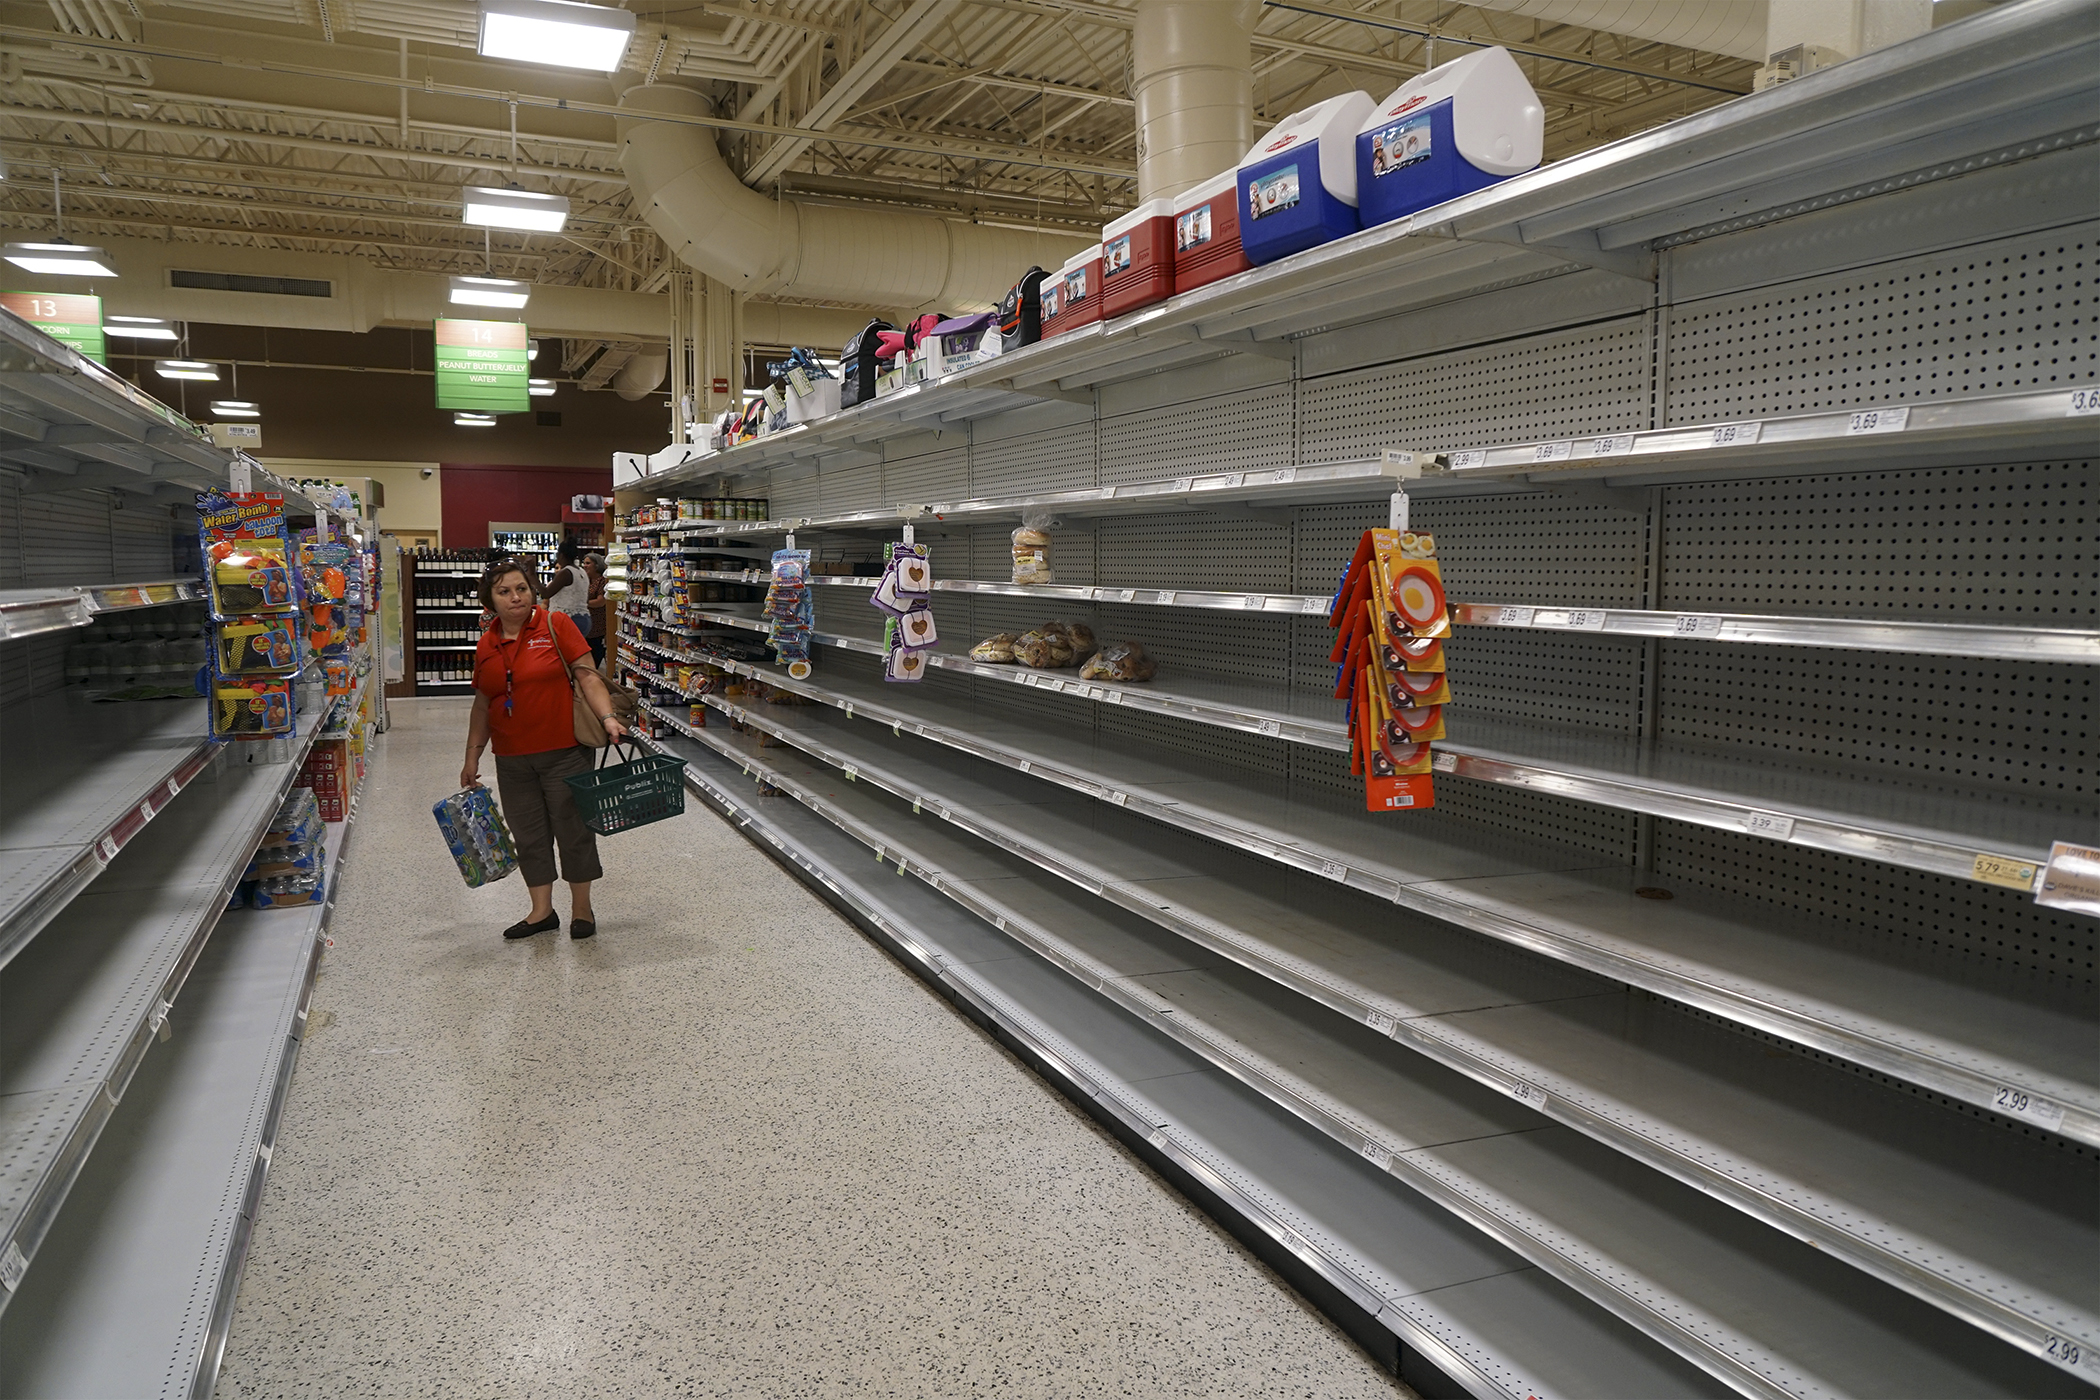 Customers browse empty shelves at a Publix Super Markets Inc. store ahead of Hurricane Matthew making landfall in West Palm Beach, Florida, on Oct. 5, 2016.